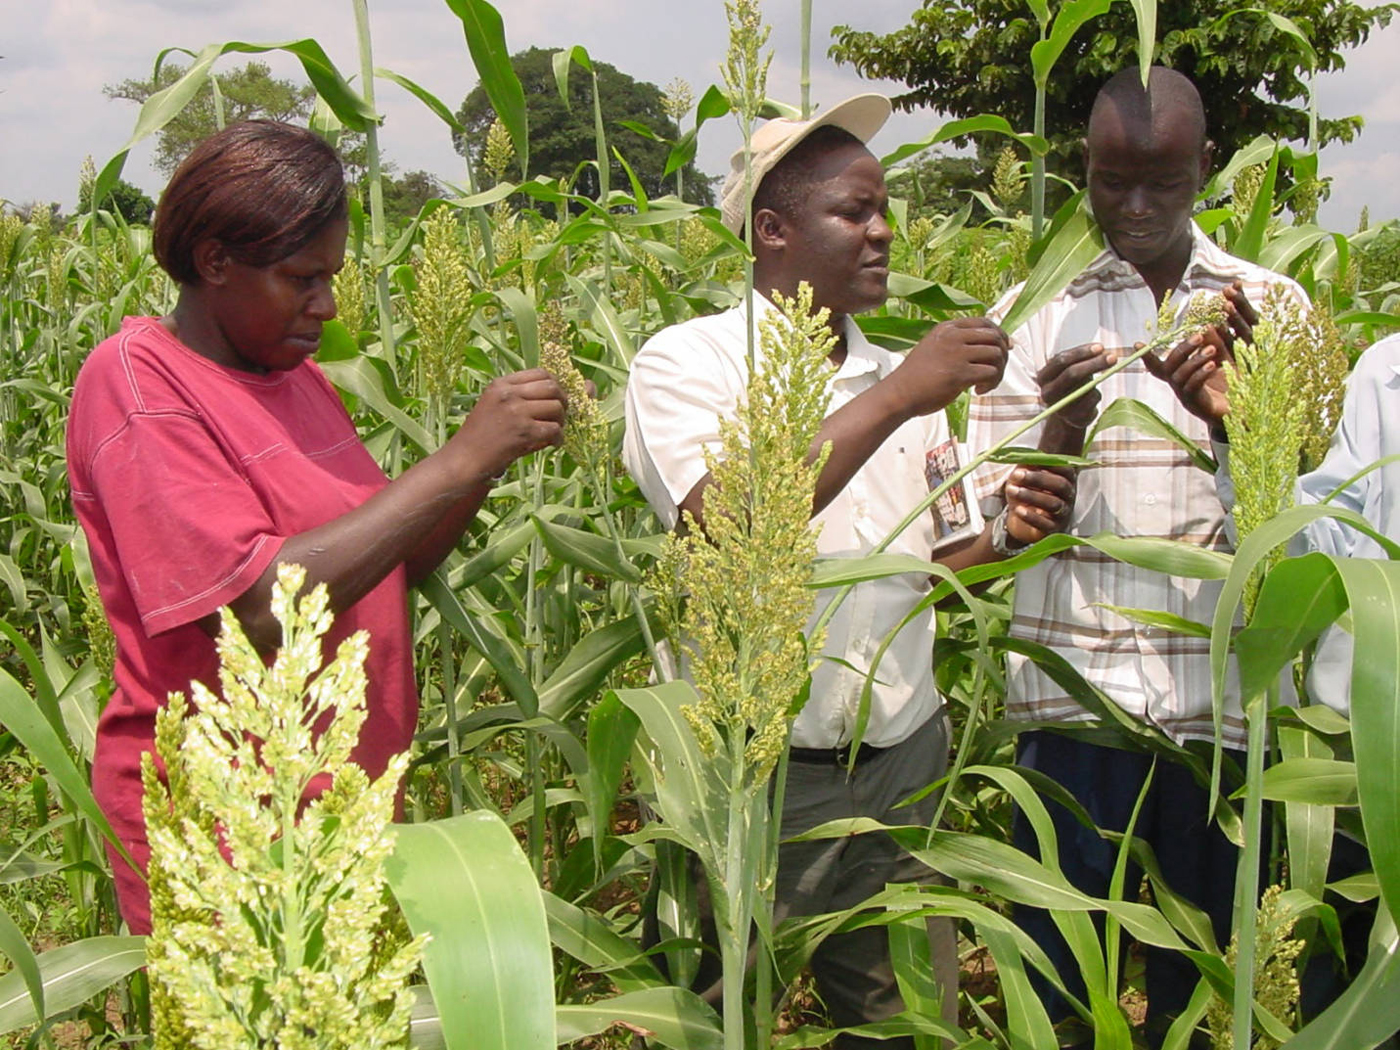 A team led by Kayuki Kaizzi (center) conducted research to determine 15 crop-nutrient response functions, which were then integrated by UNL collaborators into the Uganda Fertilizer Optimization tool.